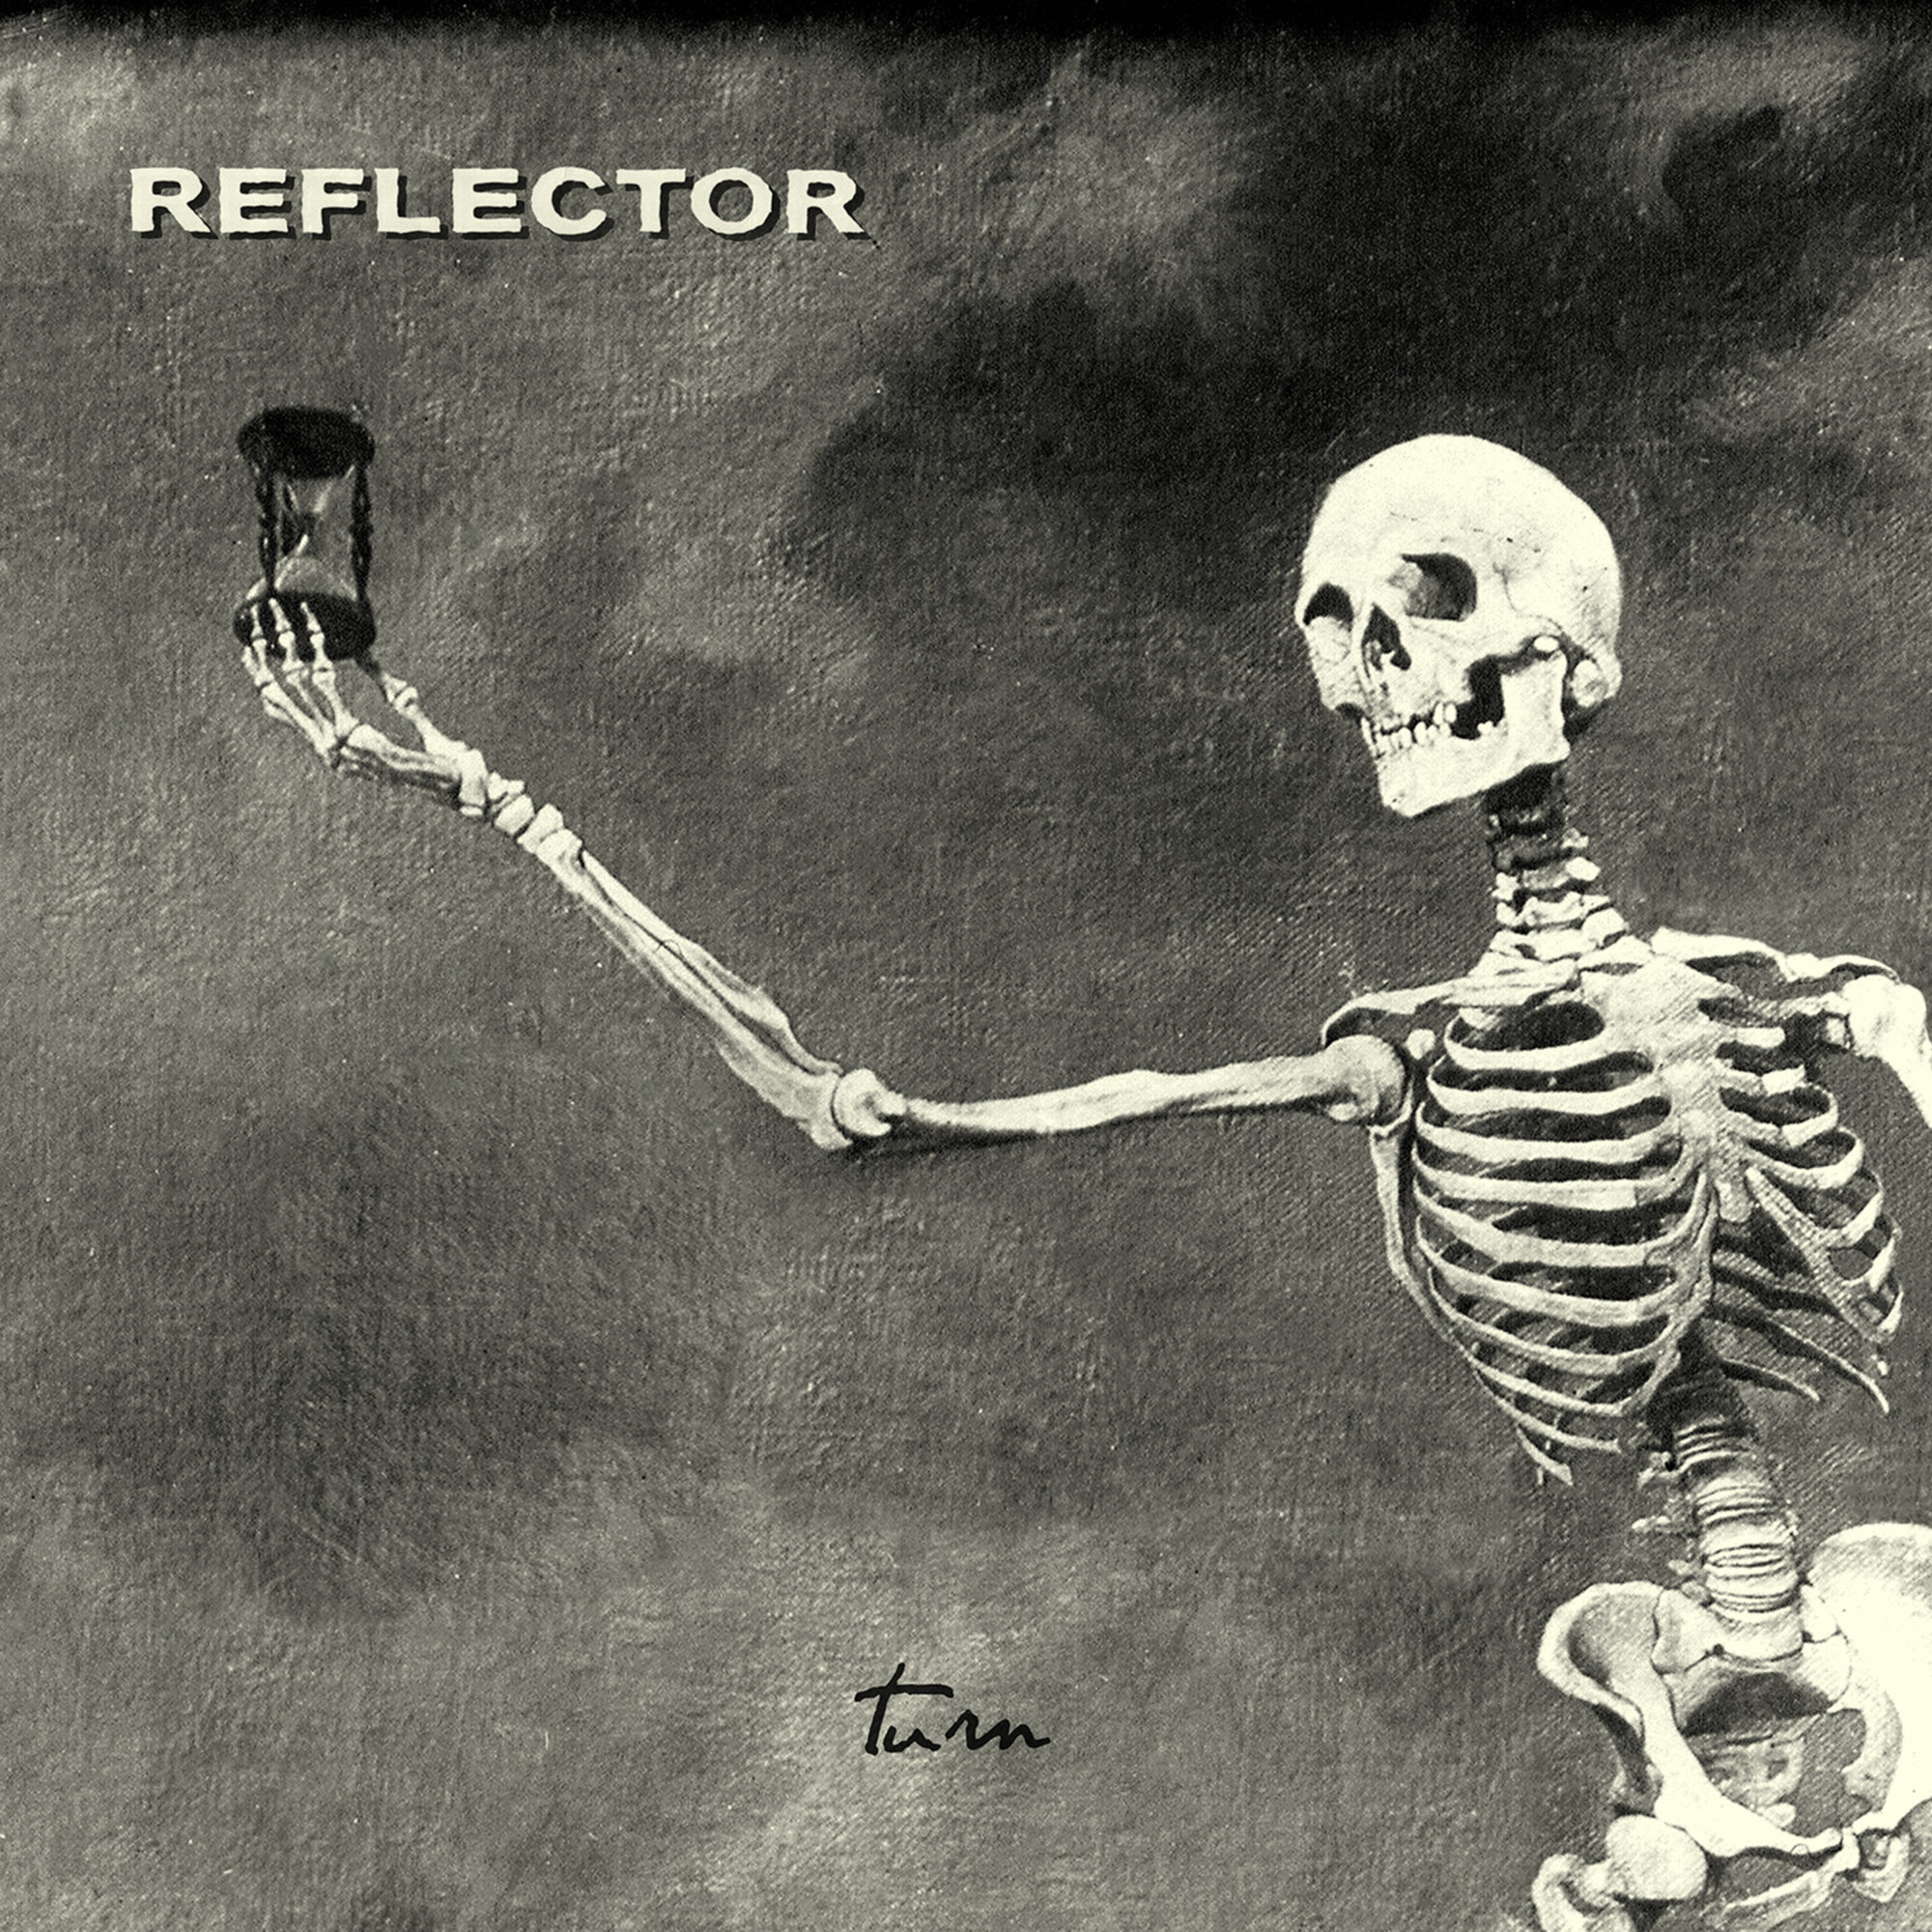 Reflector Band Turn LP Cover